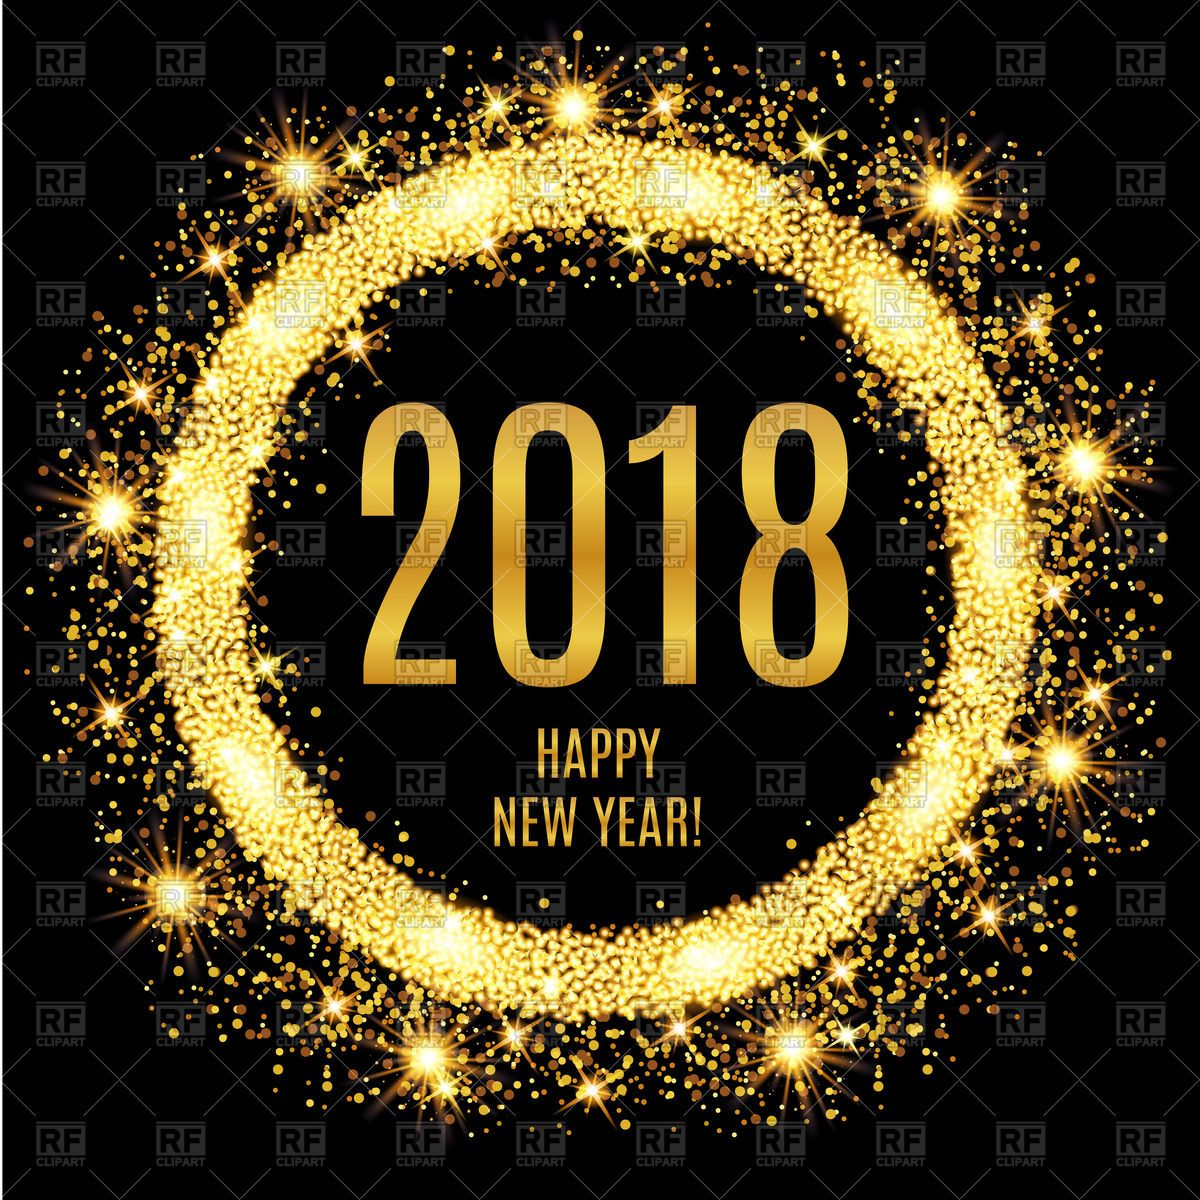 Nice Vector Image Of 2018 Happy New Year Glowing Gold Background #153352  Includes Graphic Collections Of Gold And 2018. You Can Download This Image  In EPS And ...